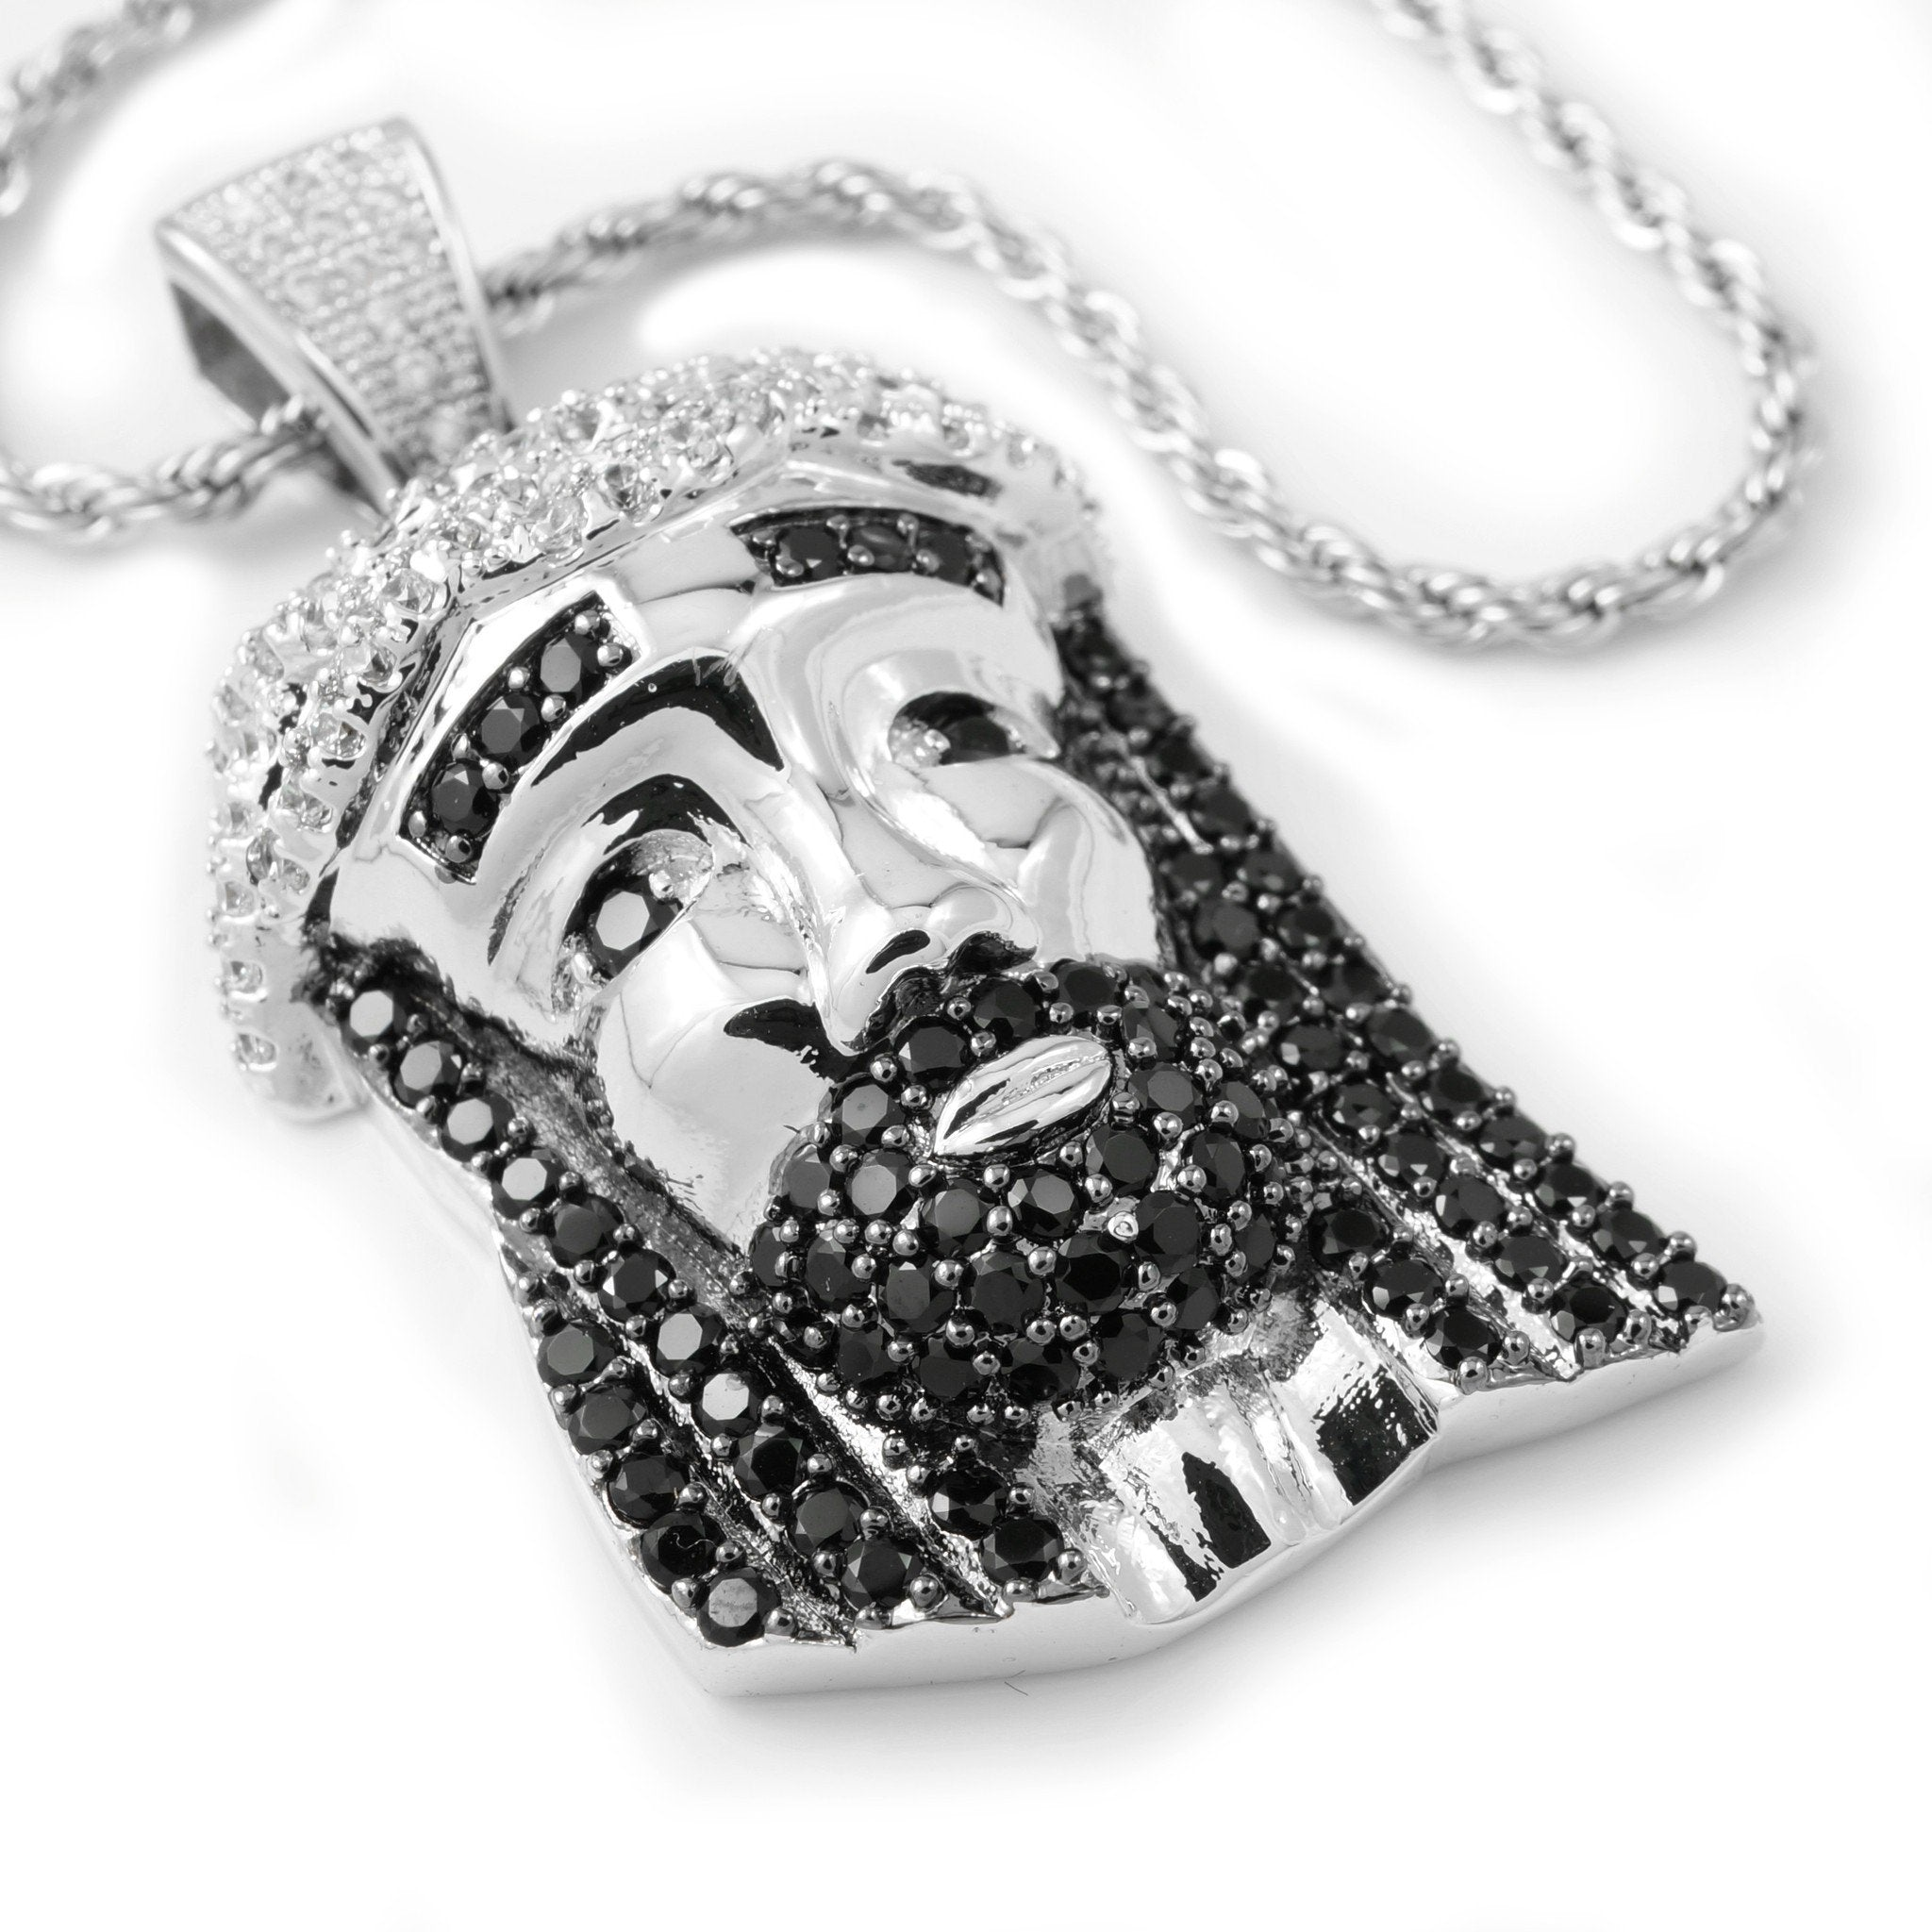 Affordable 18k White Gold/Black CZ Iced Out Mini Jesus Piece 2 Hip Hop Pendant - White Background